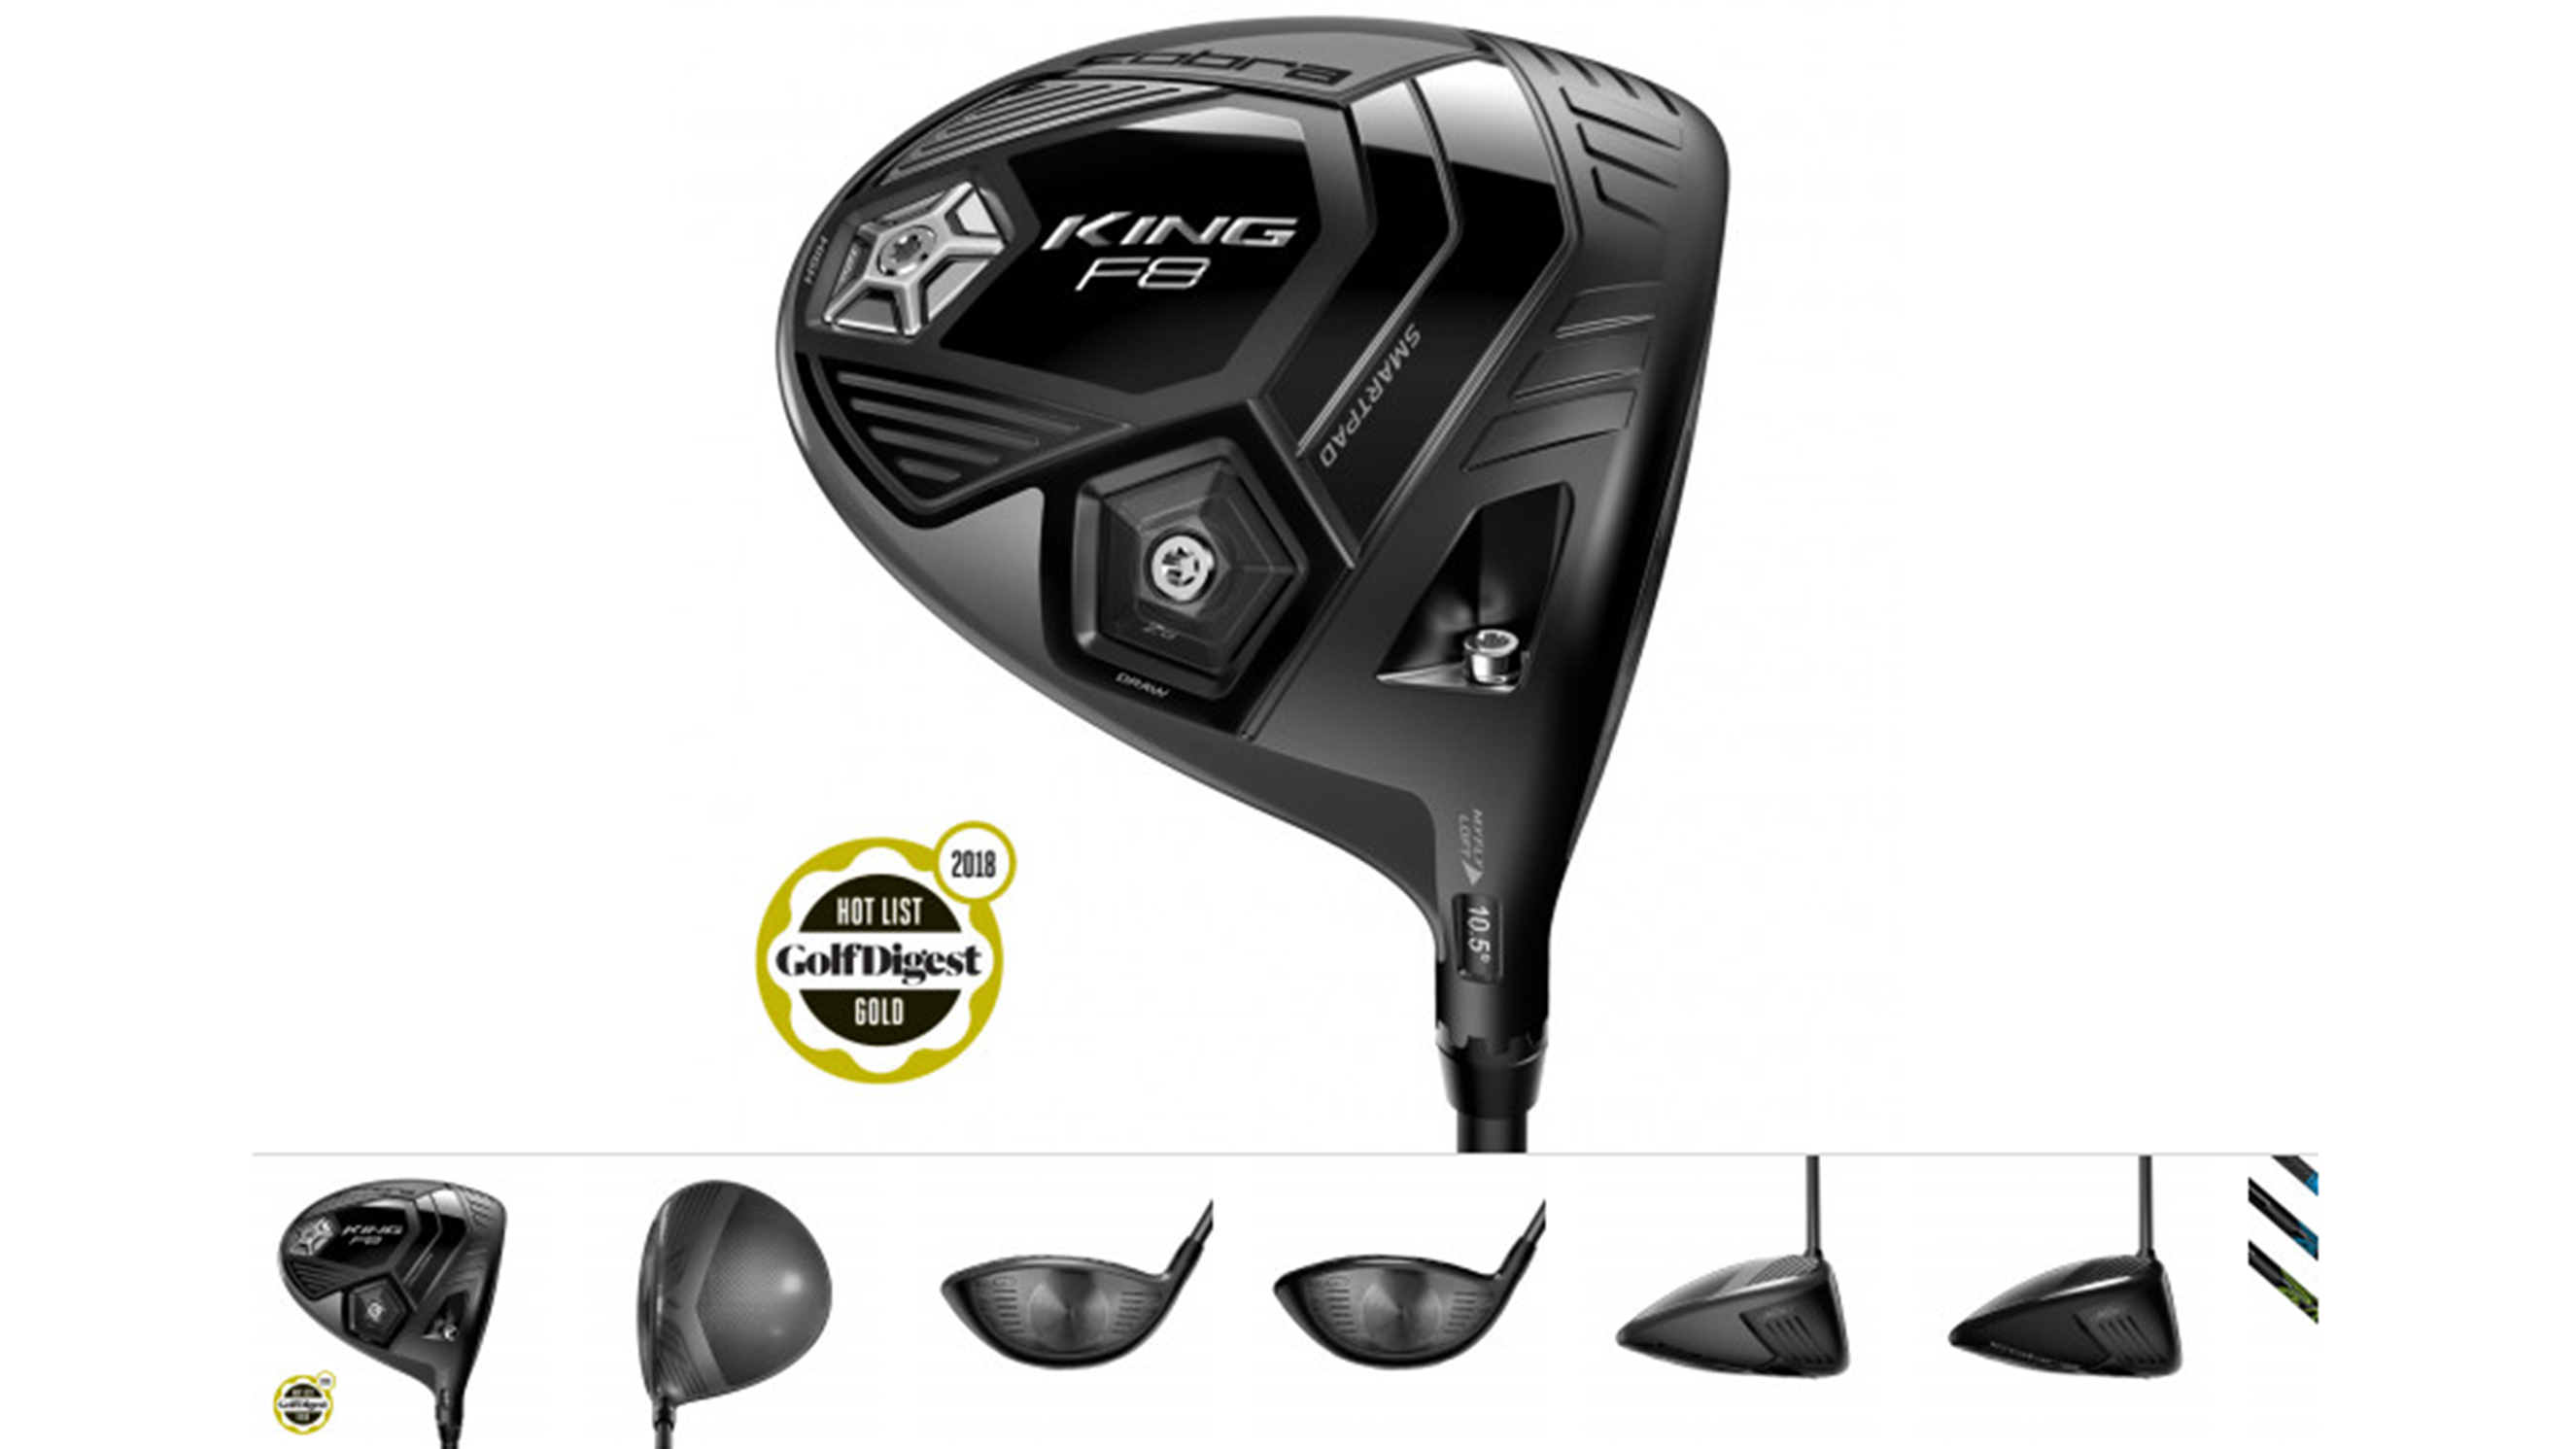 2018 Cobra King F8 Driver Review: Get the Best One for Your